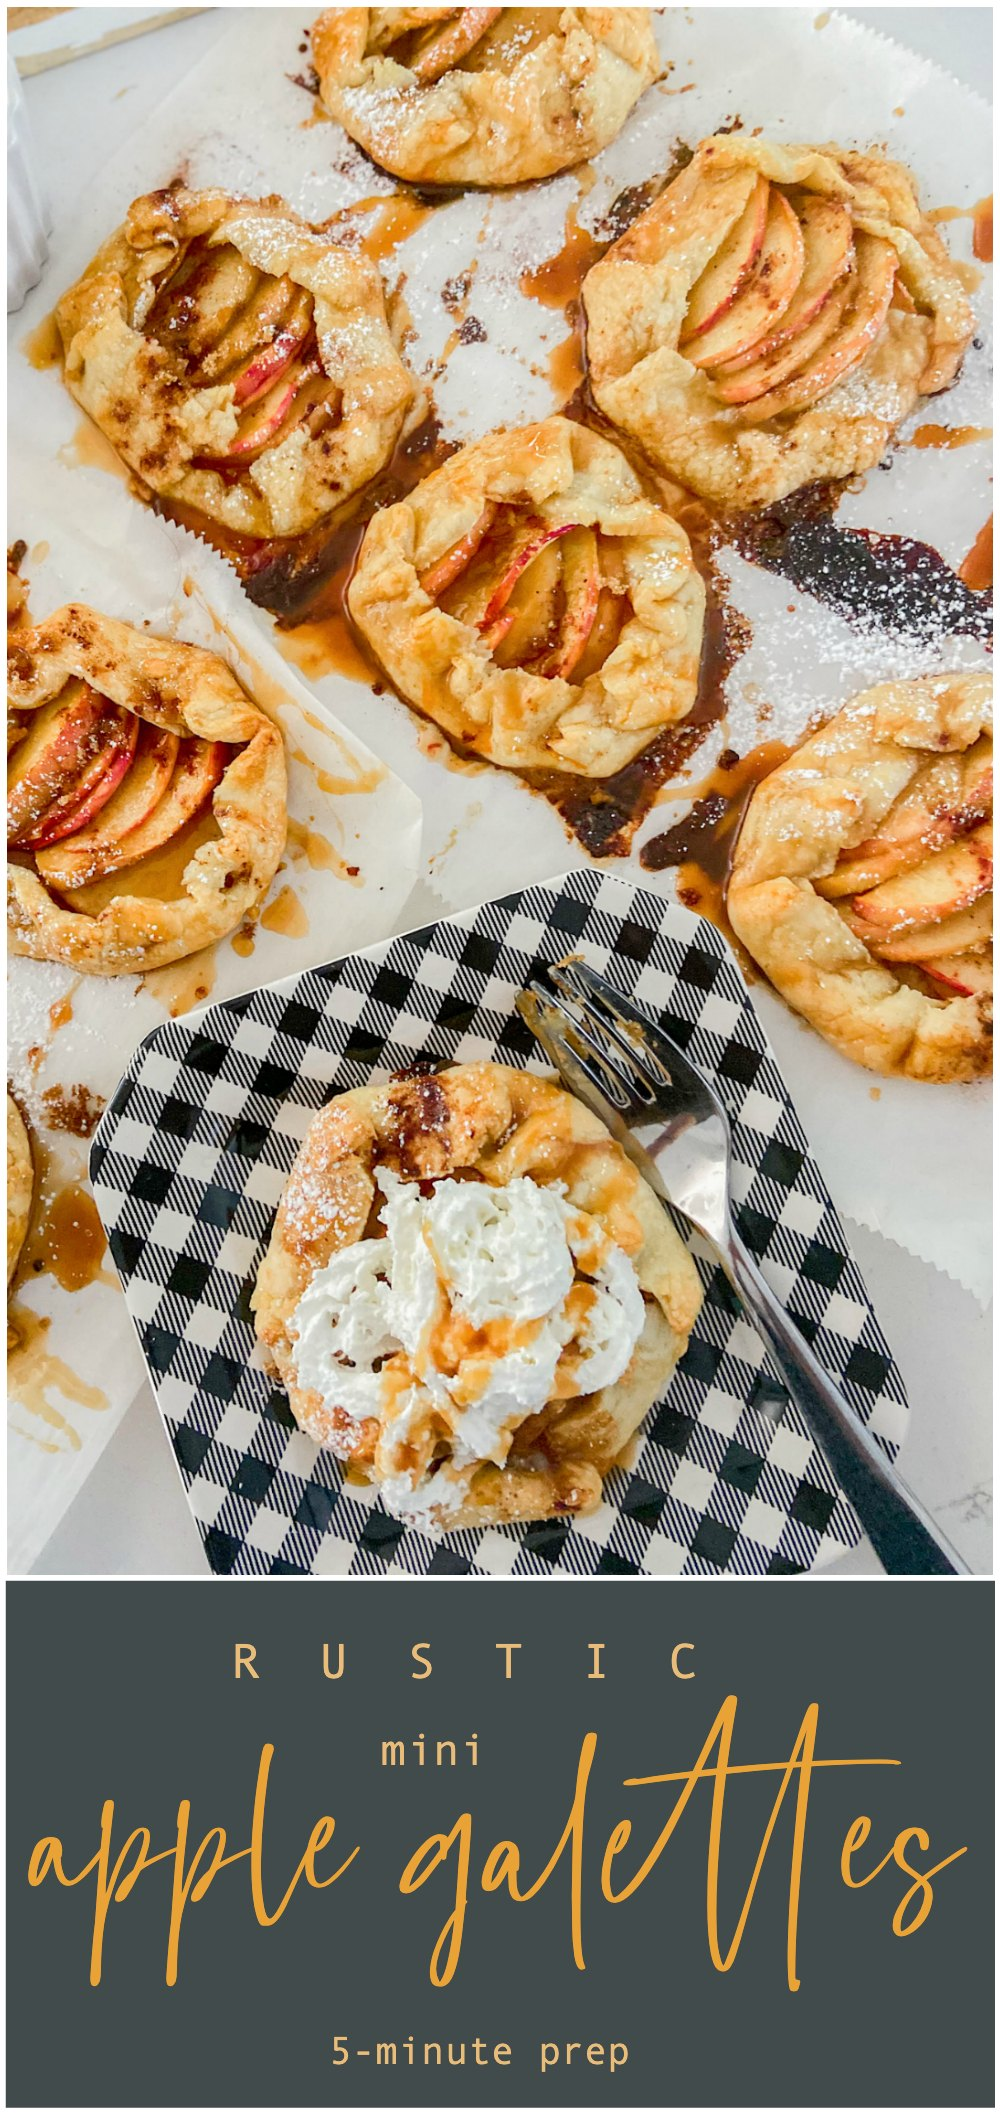 Rustic Mini Apple Galettes. It's apple season! Celebrate by making these easy rustic apple hand pies. They are perfect for fall picnics and family desserts!